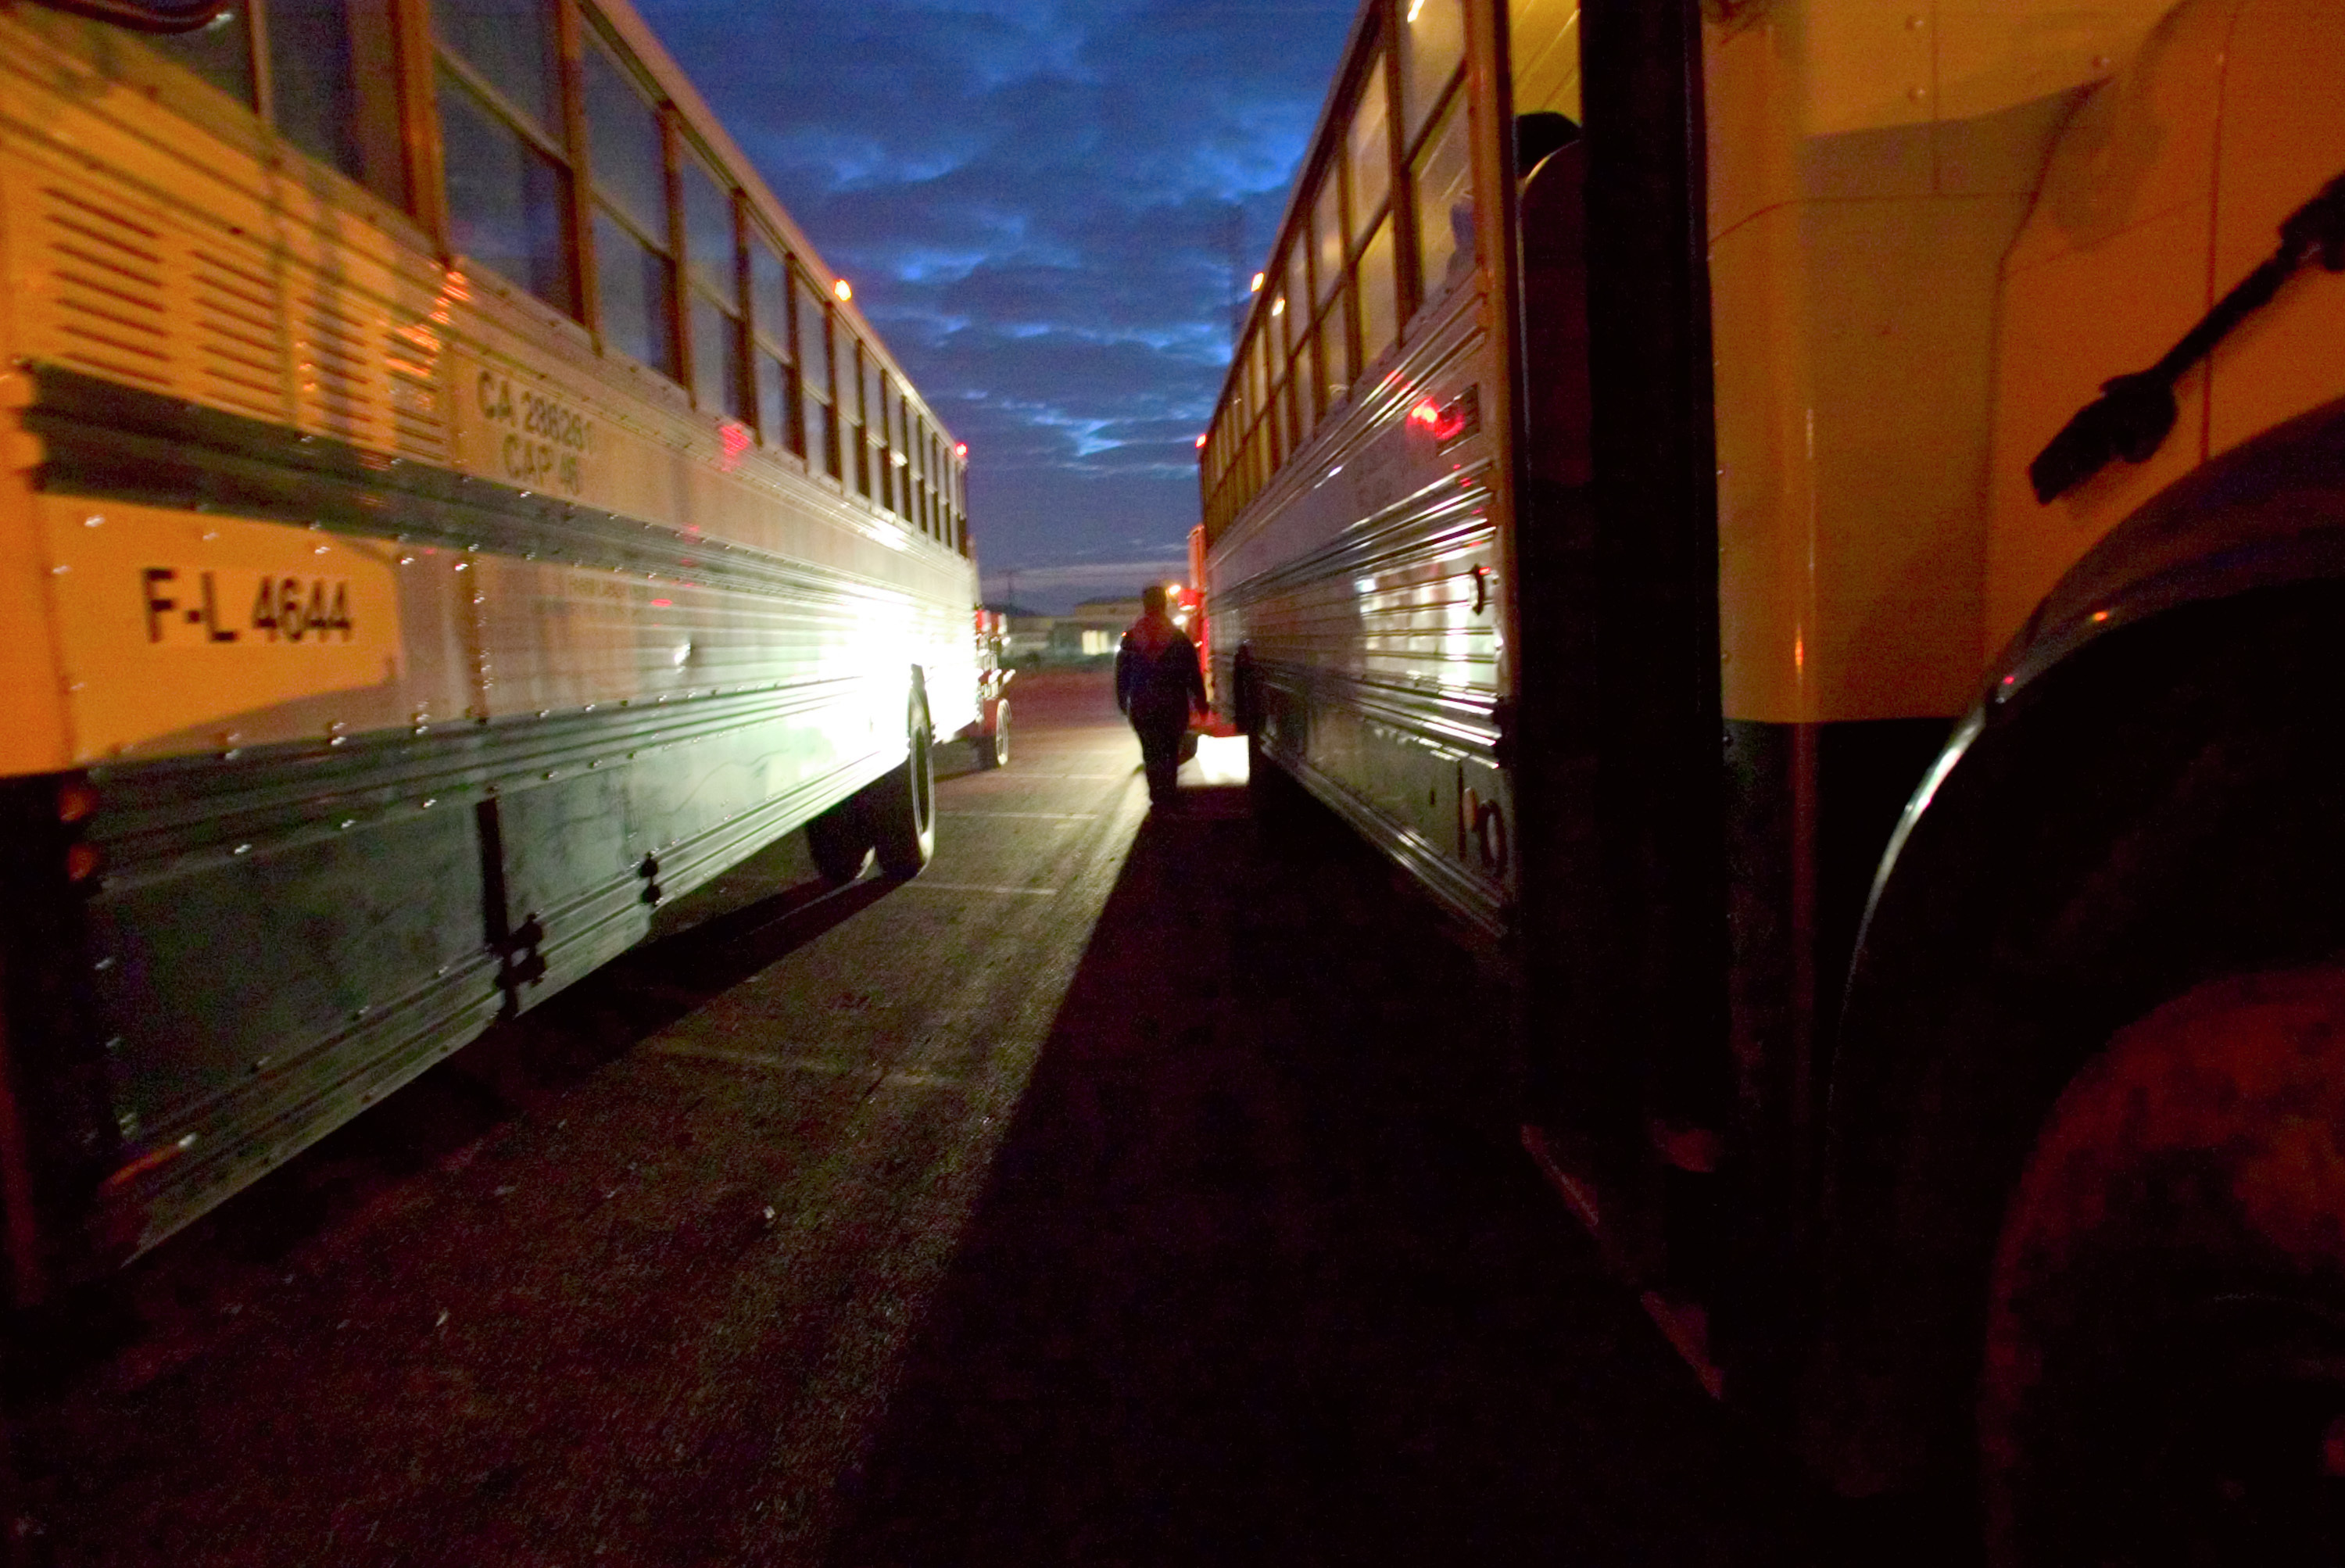 Farmworkers board buses in the early morning hours in Huron, California.